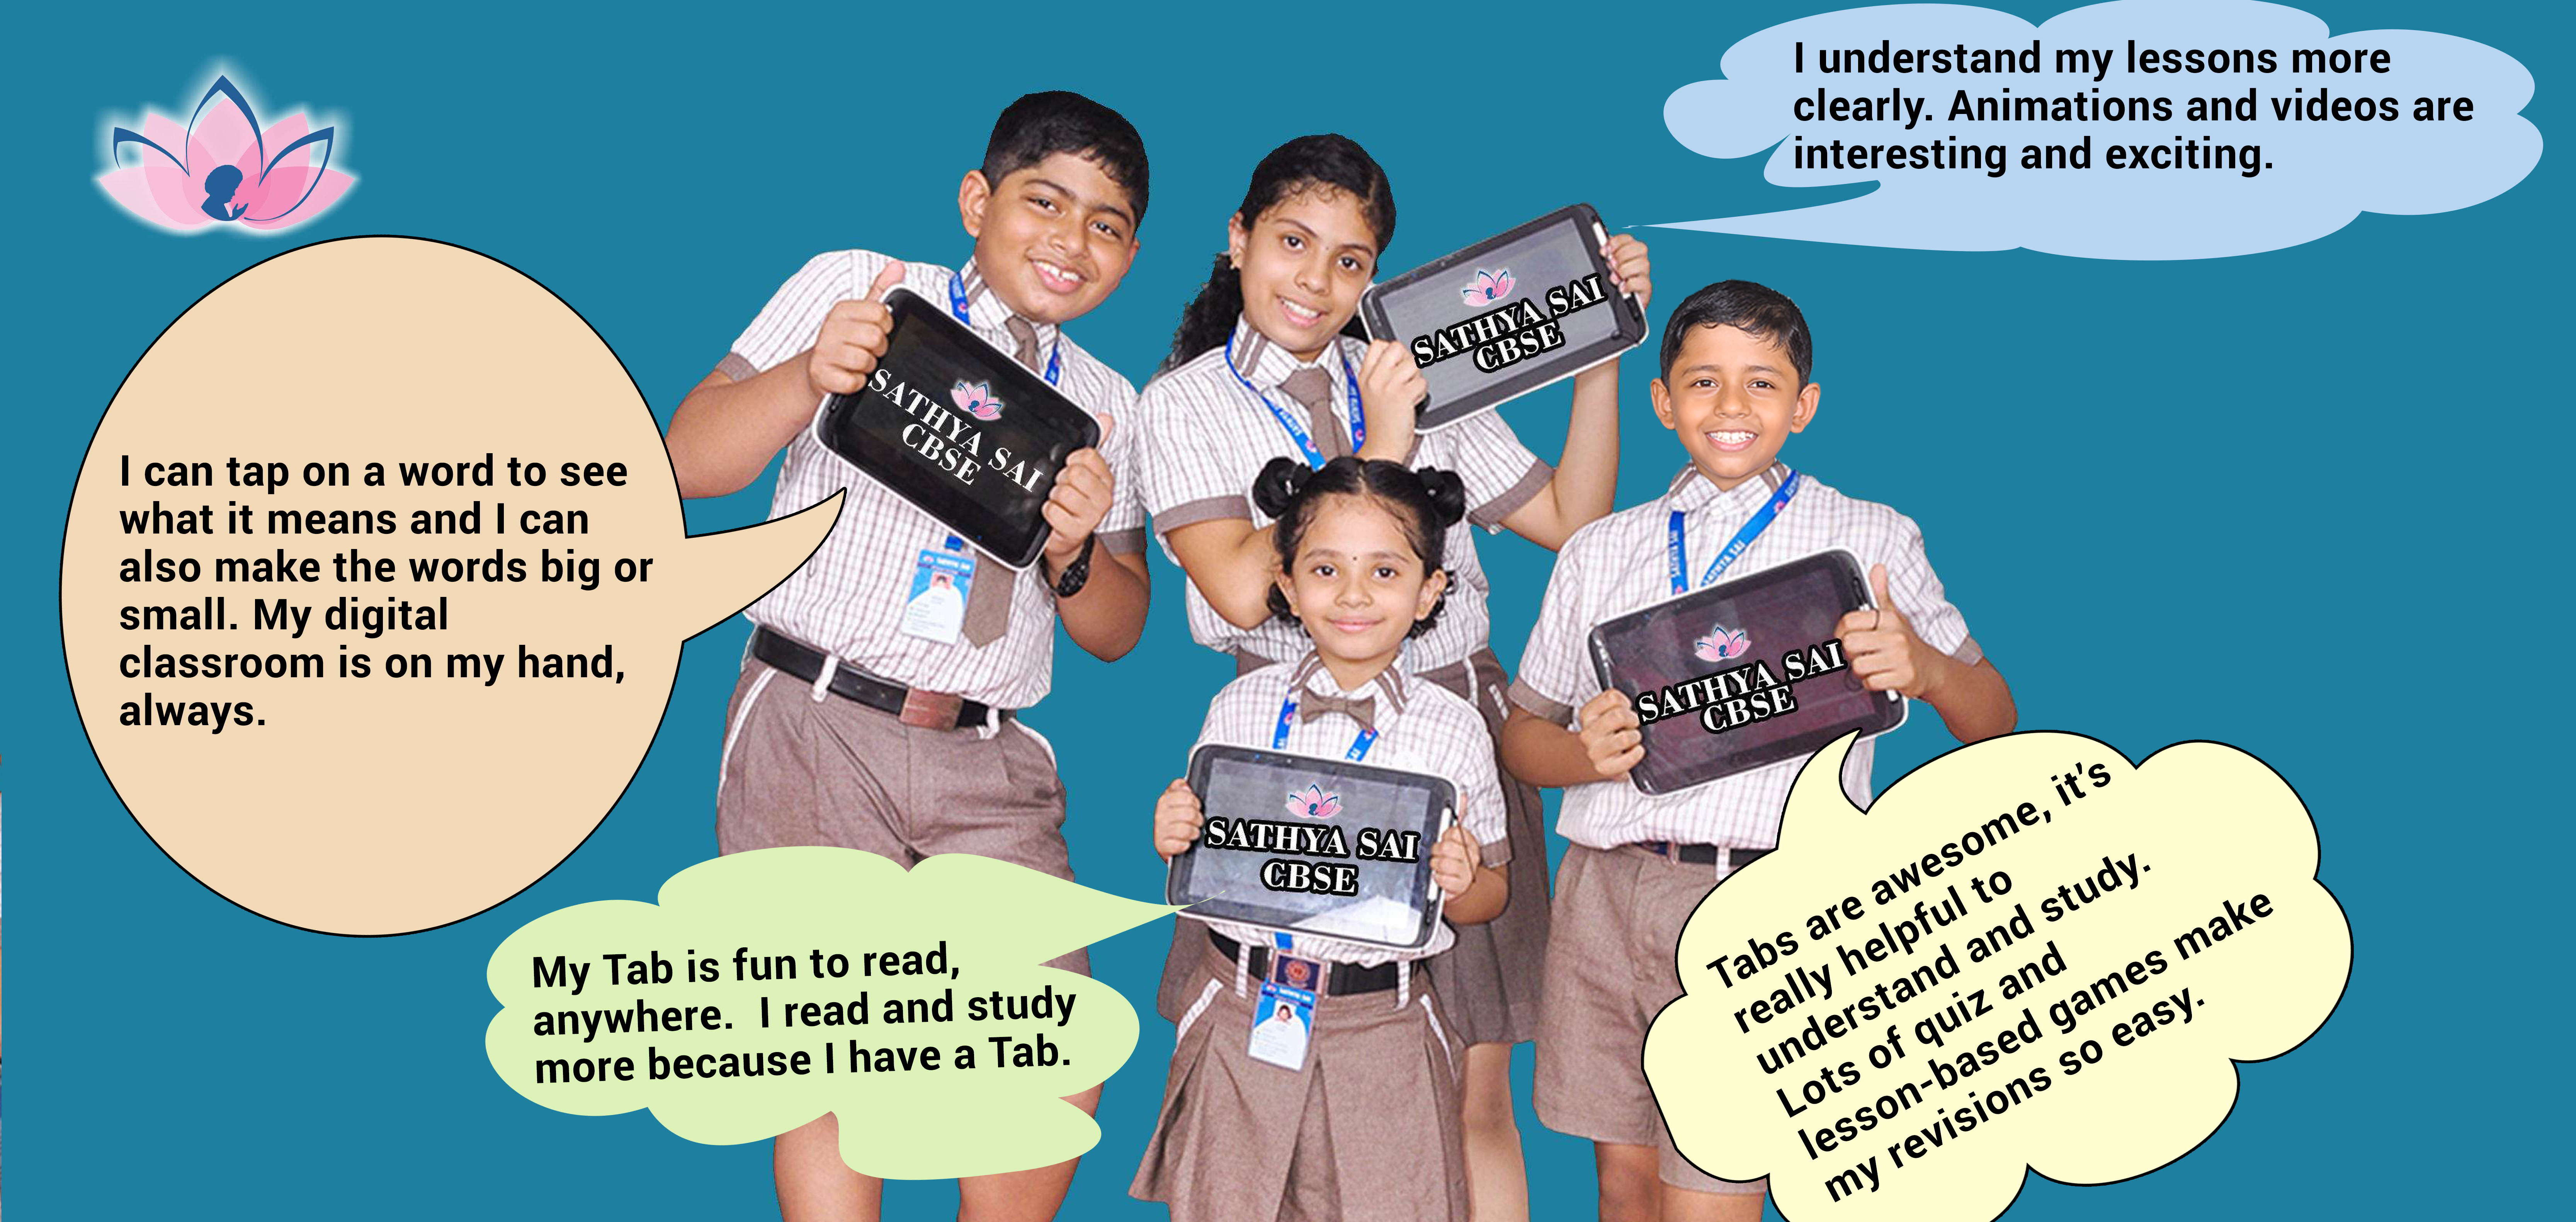 Best CBSE School Chennai